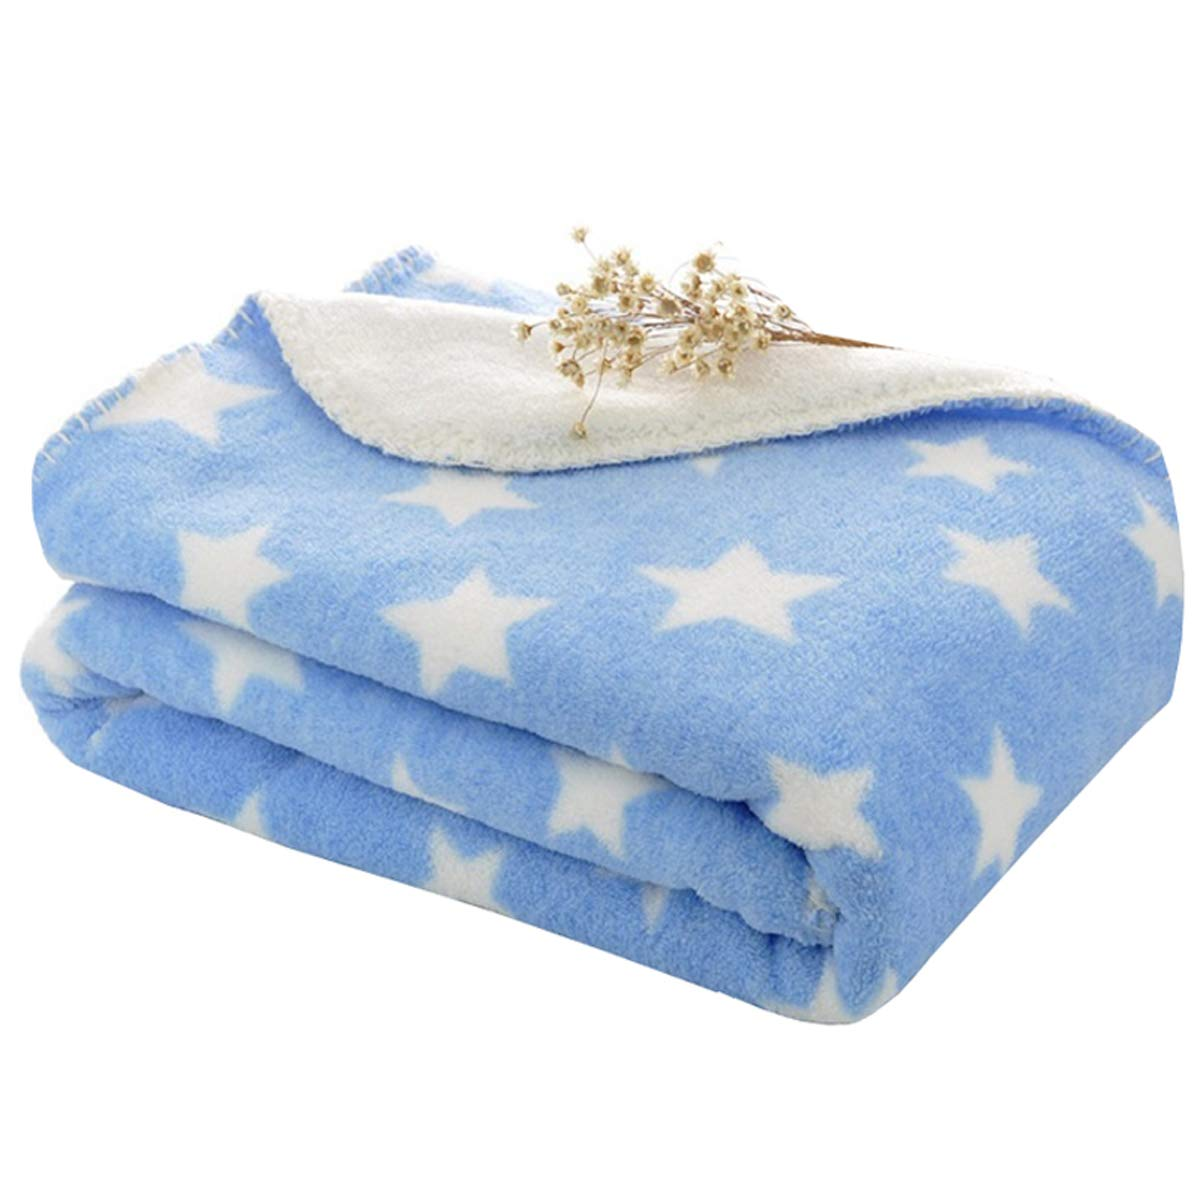 Cutieco Luxury Series Super Soft Baby Wrapper/Blanket/Top Sheet for New  Born Babies, Blue